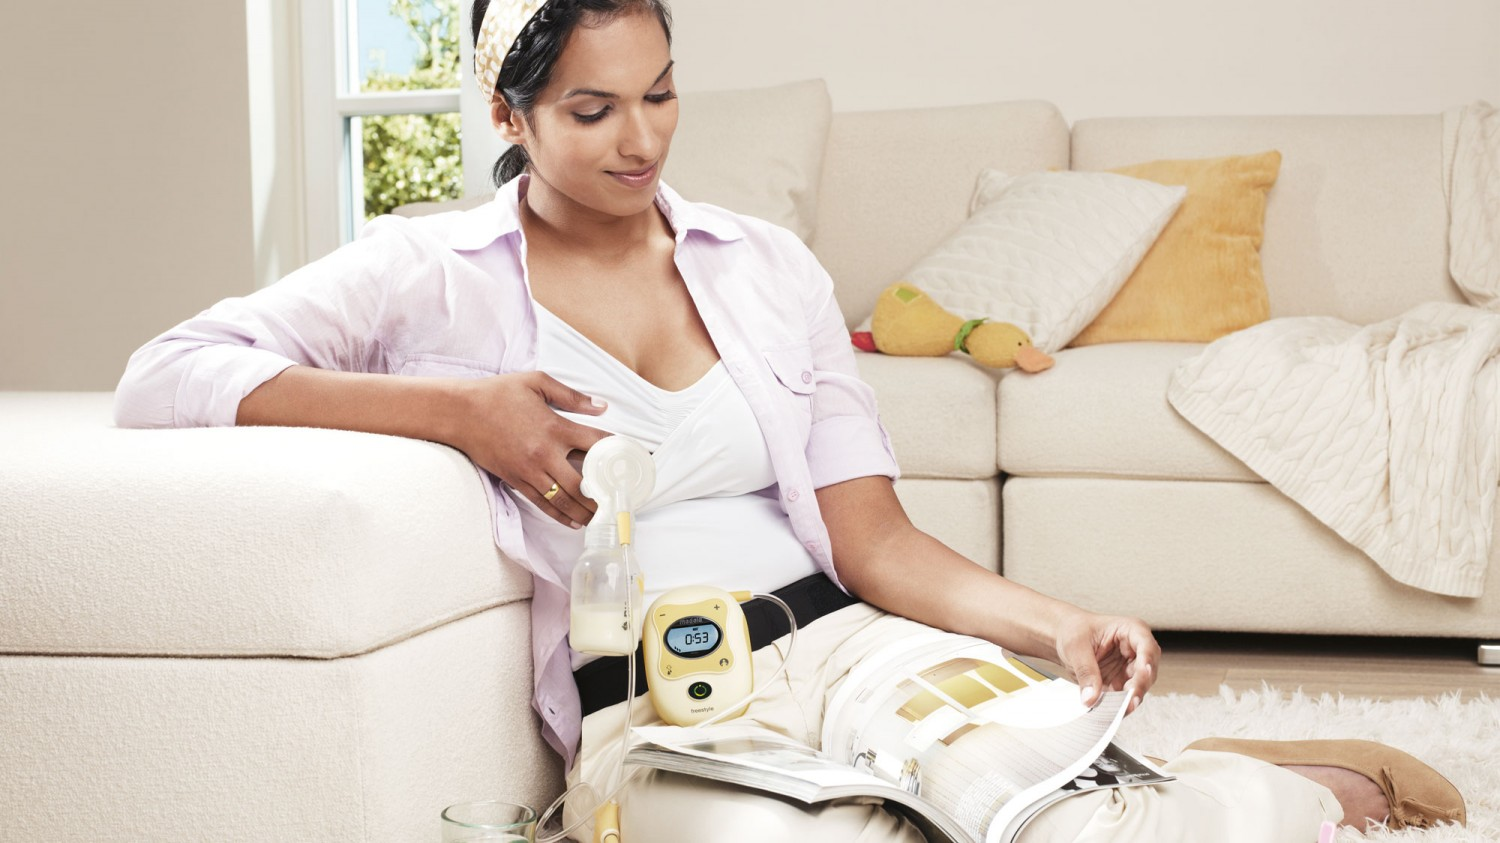 Medela Canada - How to Choose the Right Breastpump for Your Lifestyle